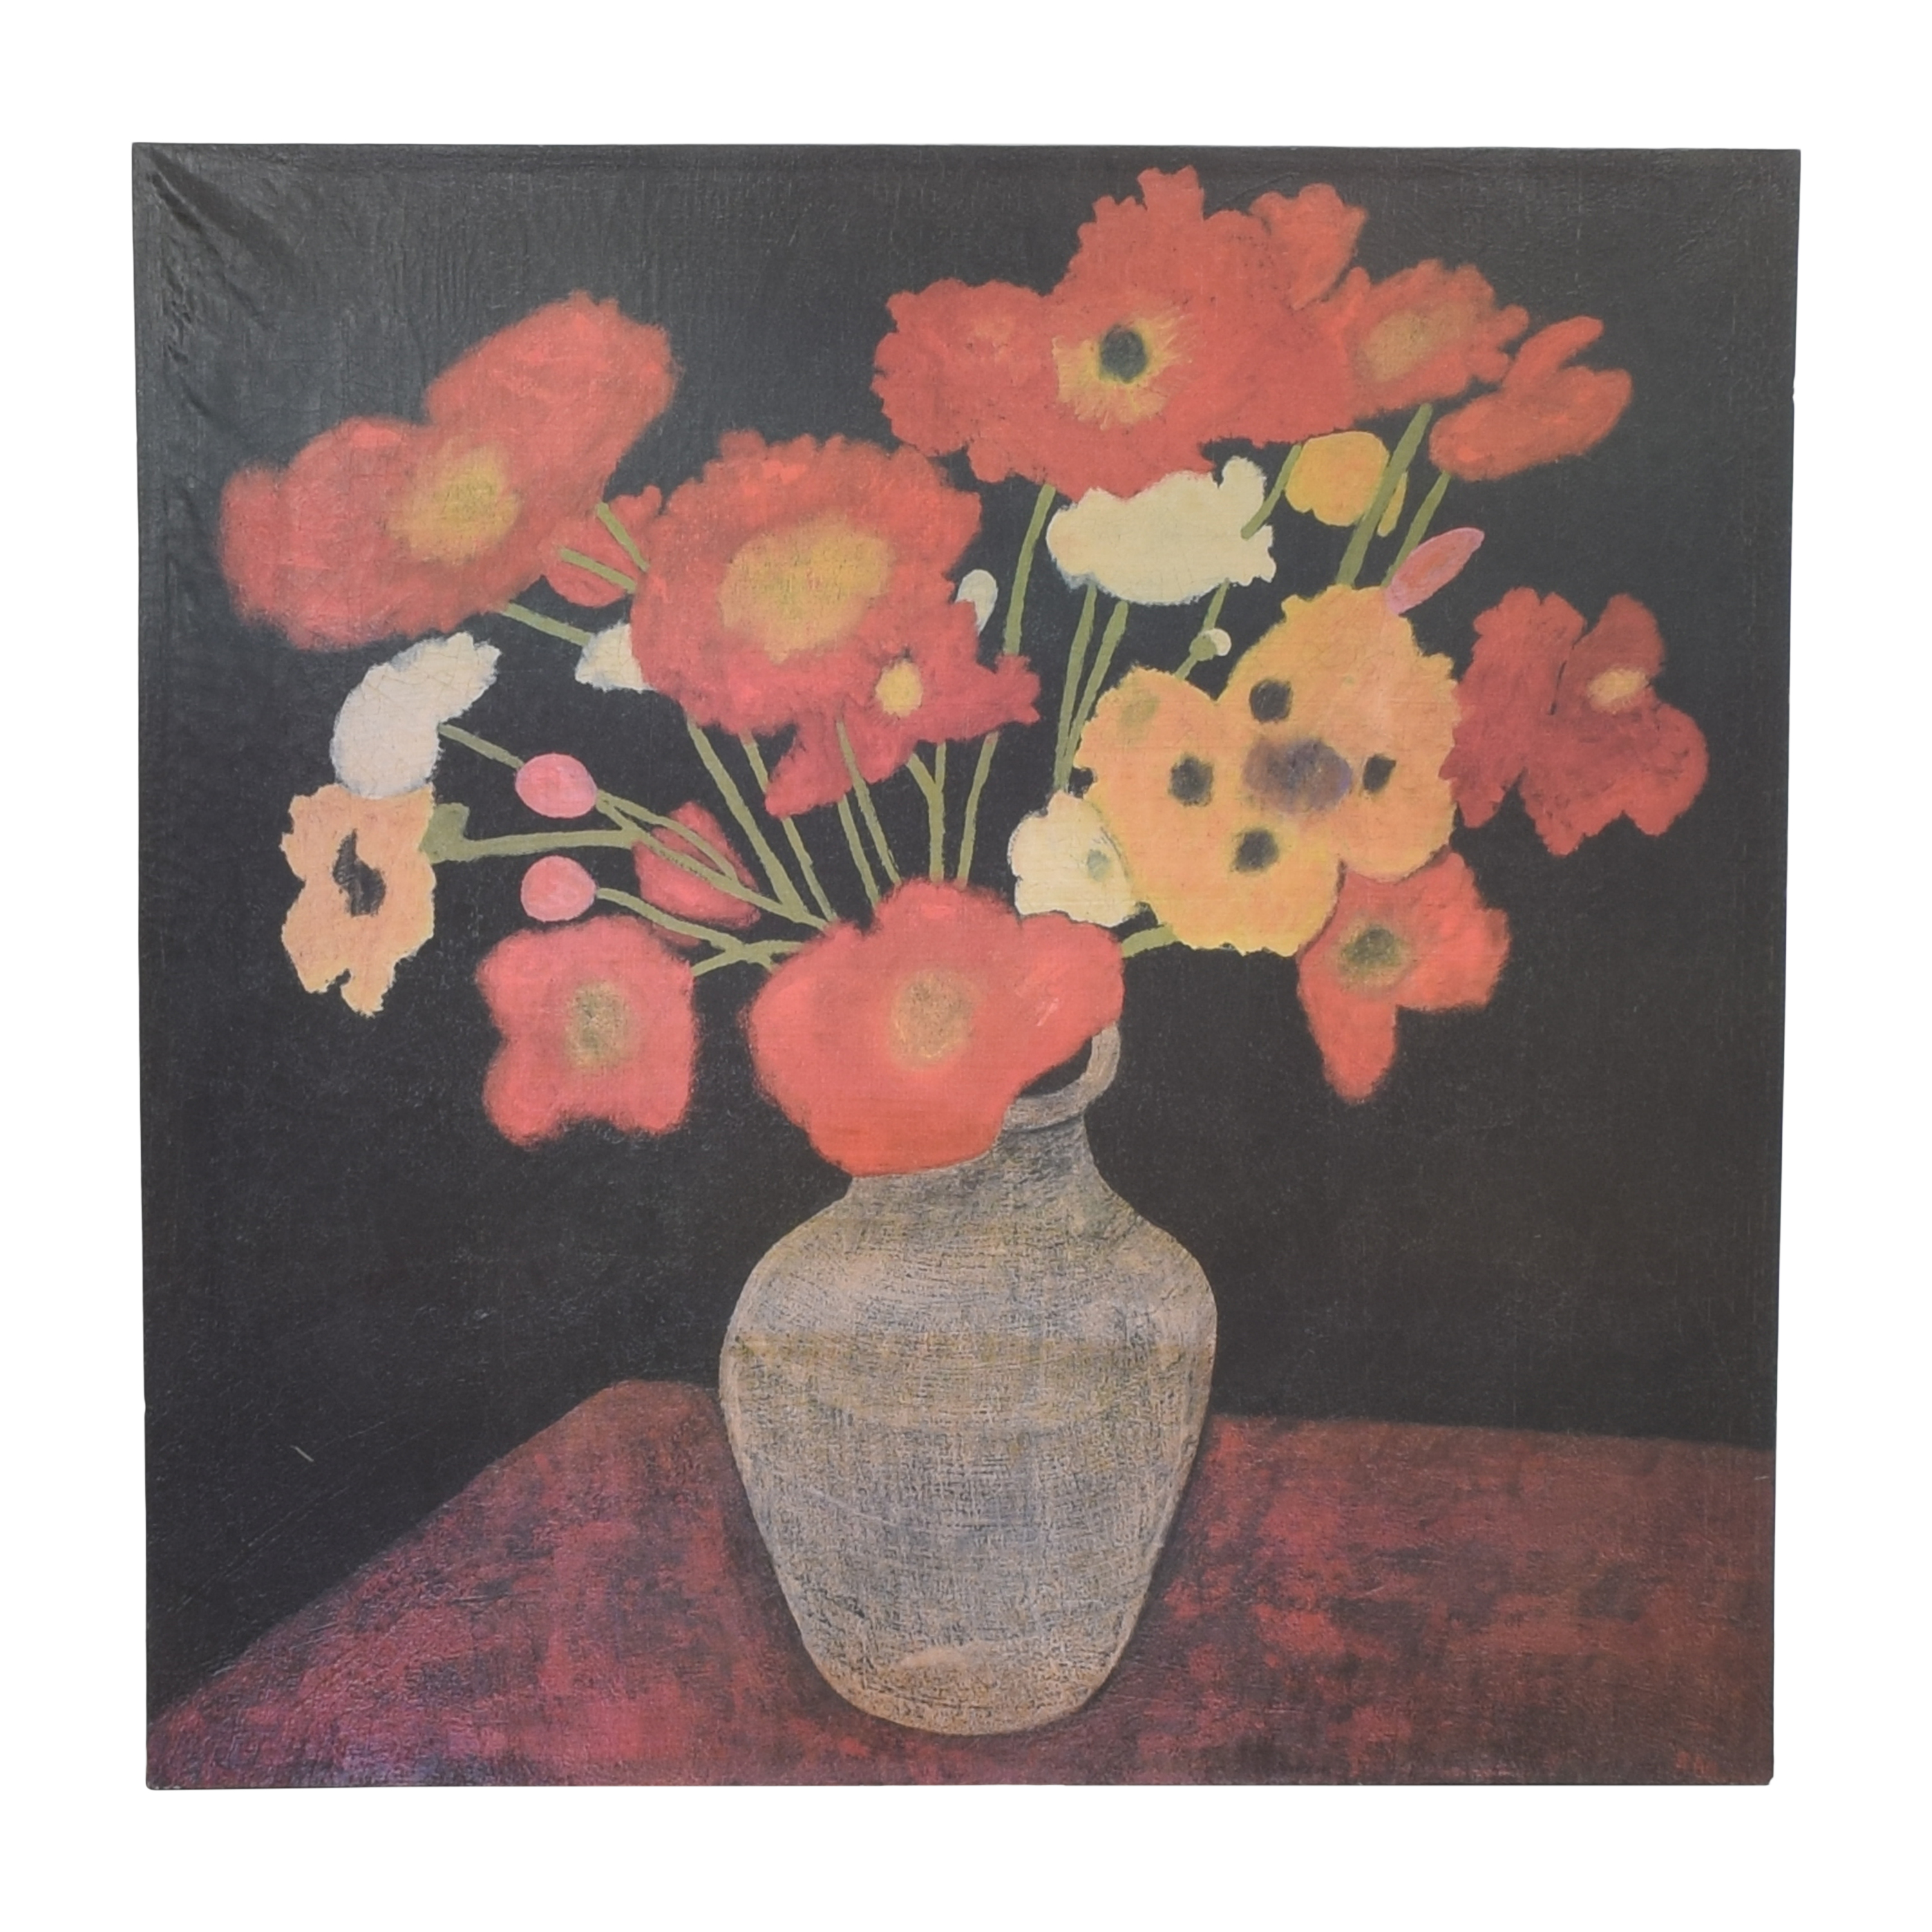 Floral Wall Art for sale